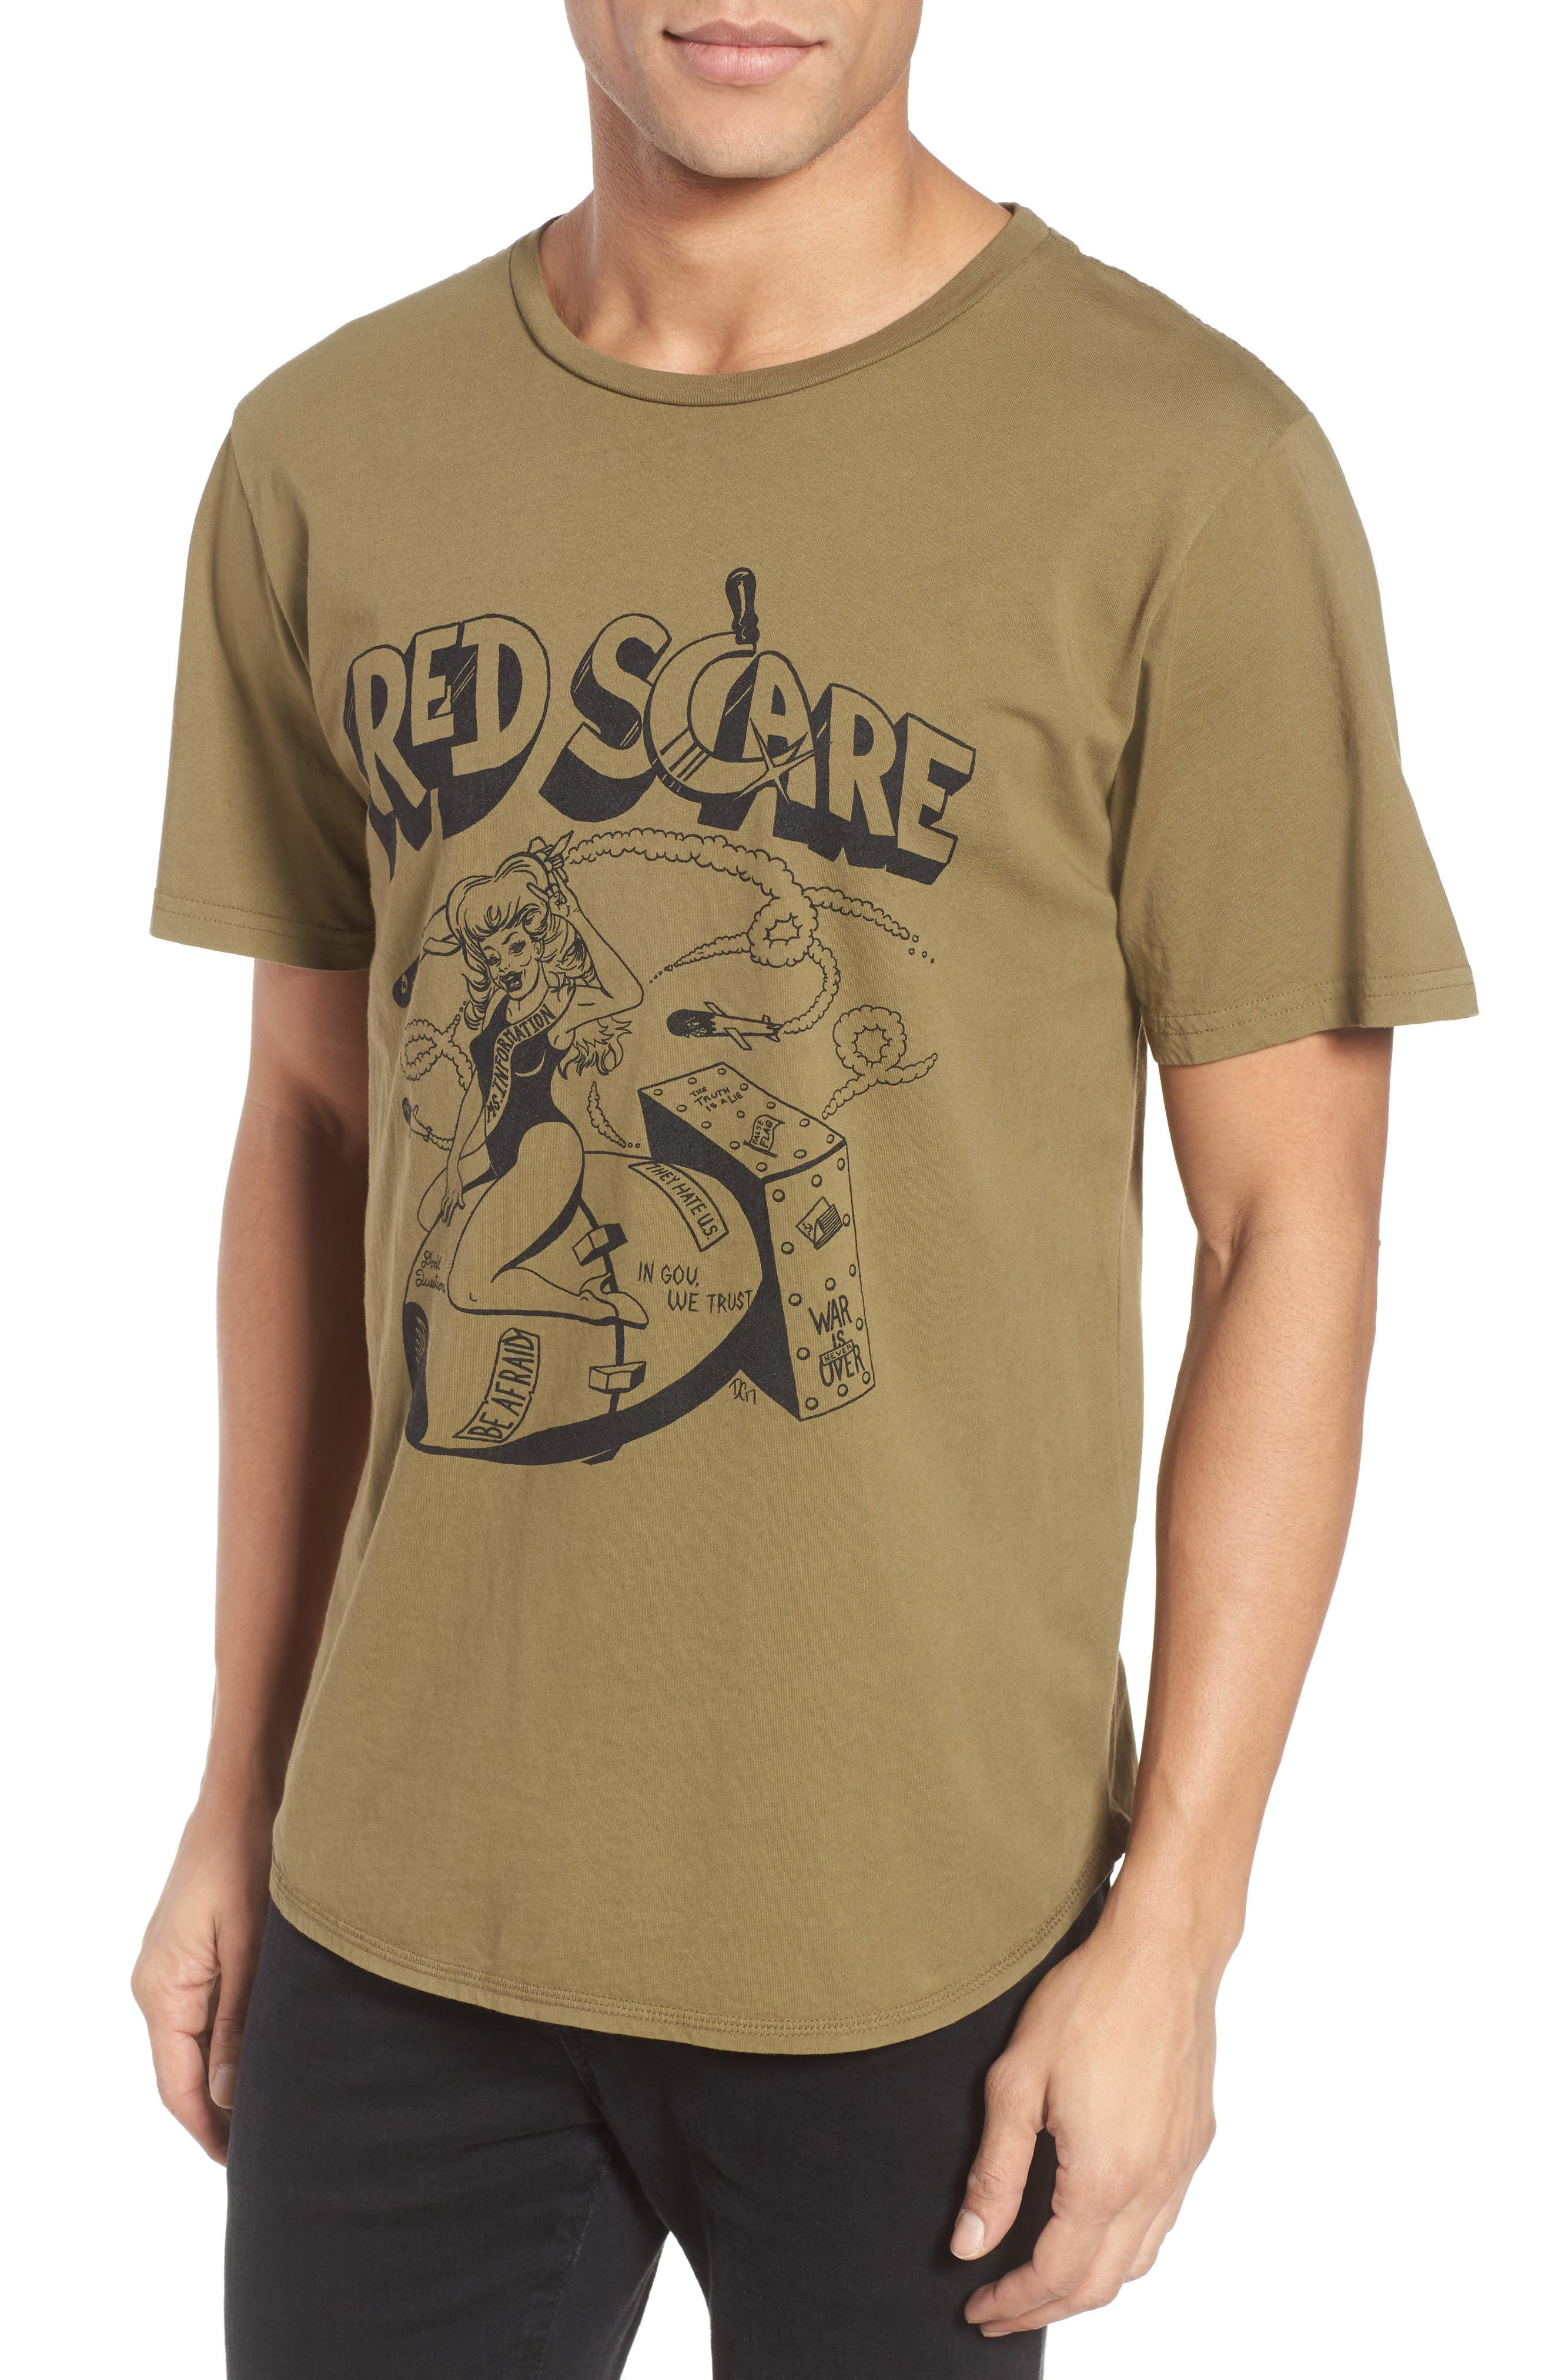 Red Scare Graphic T-Shirt,                             Main thumbnail 1, color,                             Infantry Green